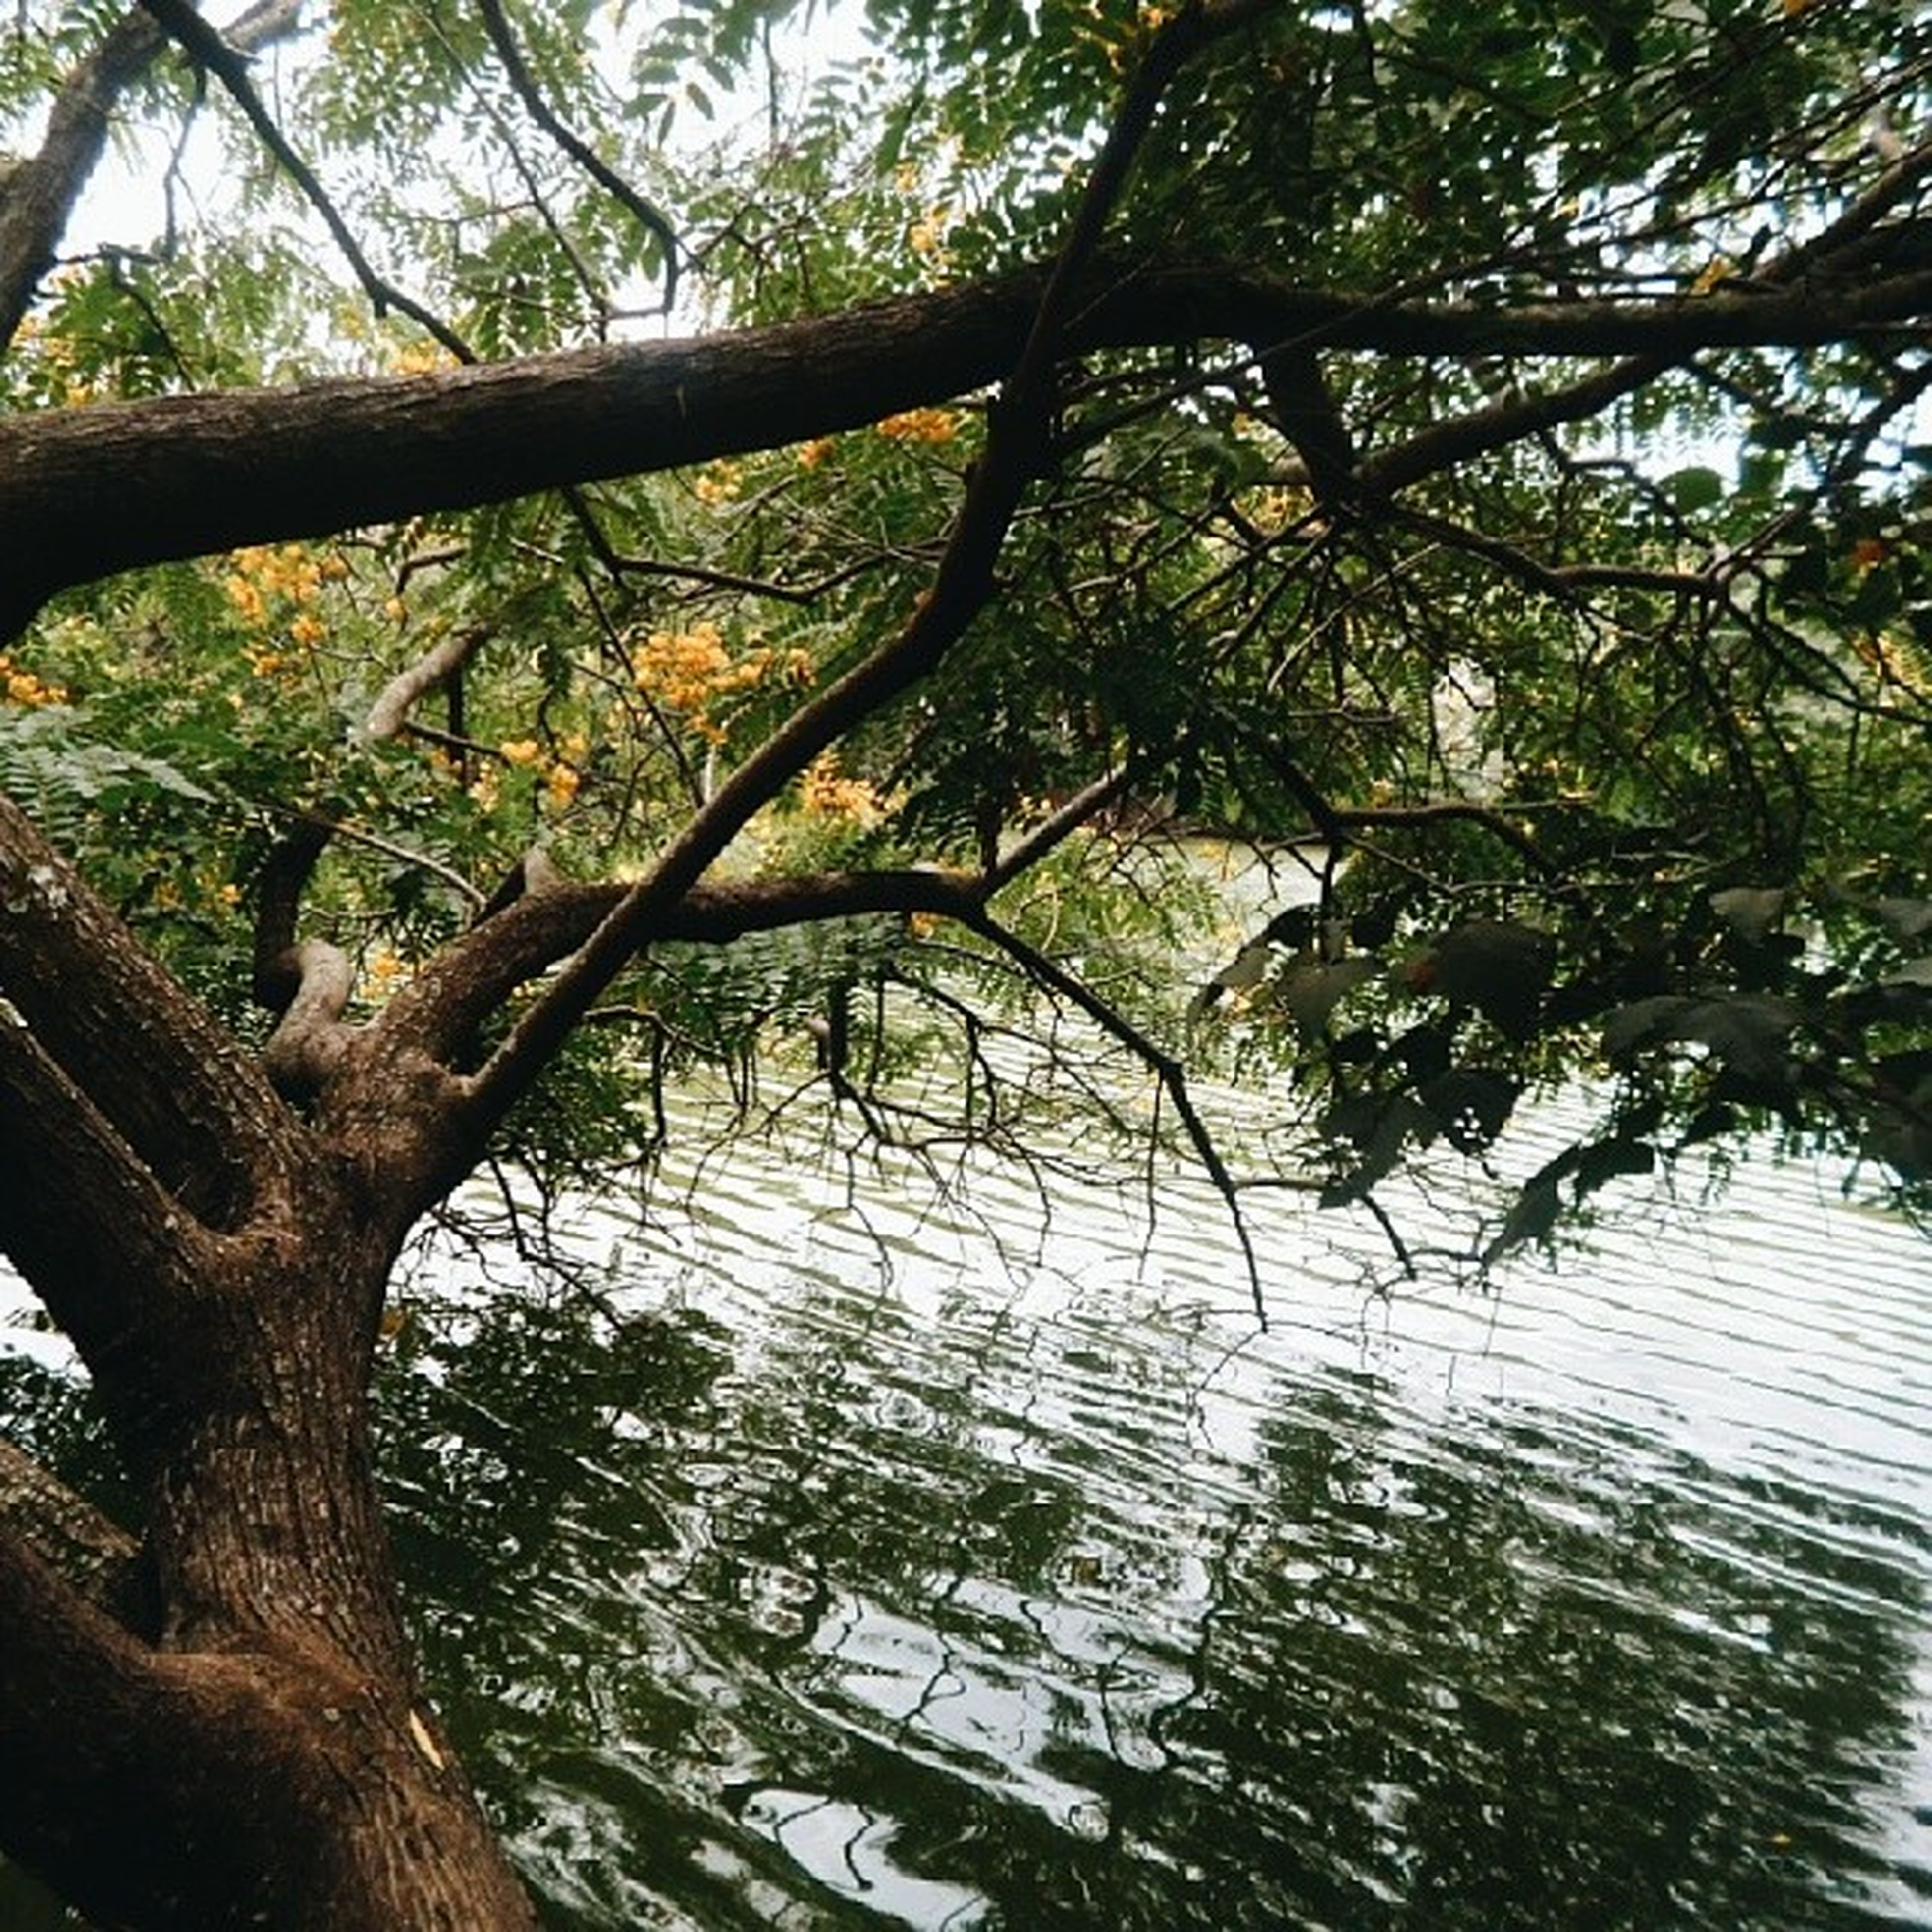 tree, branch, growth, tree trunk, water, tranquility, nature, reflection, beauty in nature, scenics, tranquil scene, green color, day, lake, low angle view, outdoors, sky, no people, sunlight, leaf